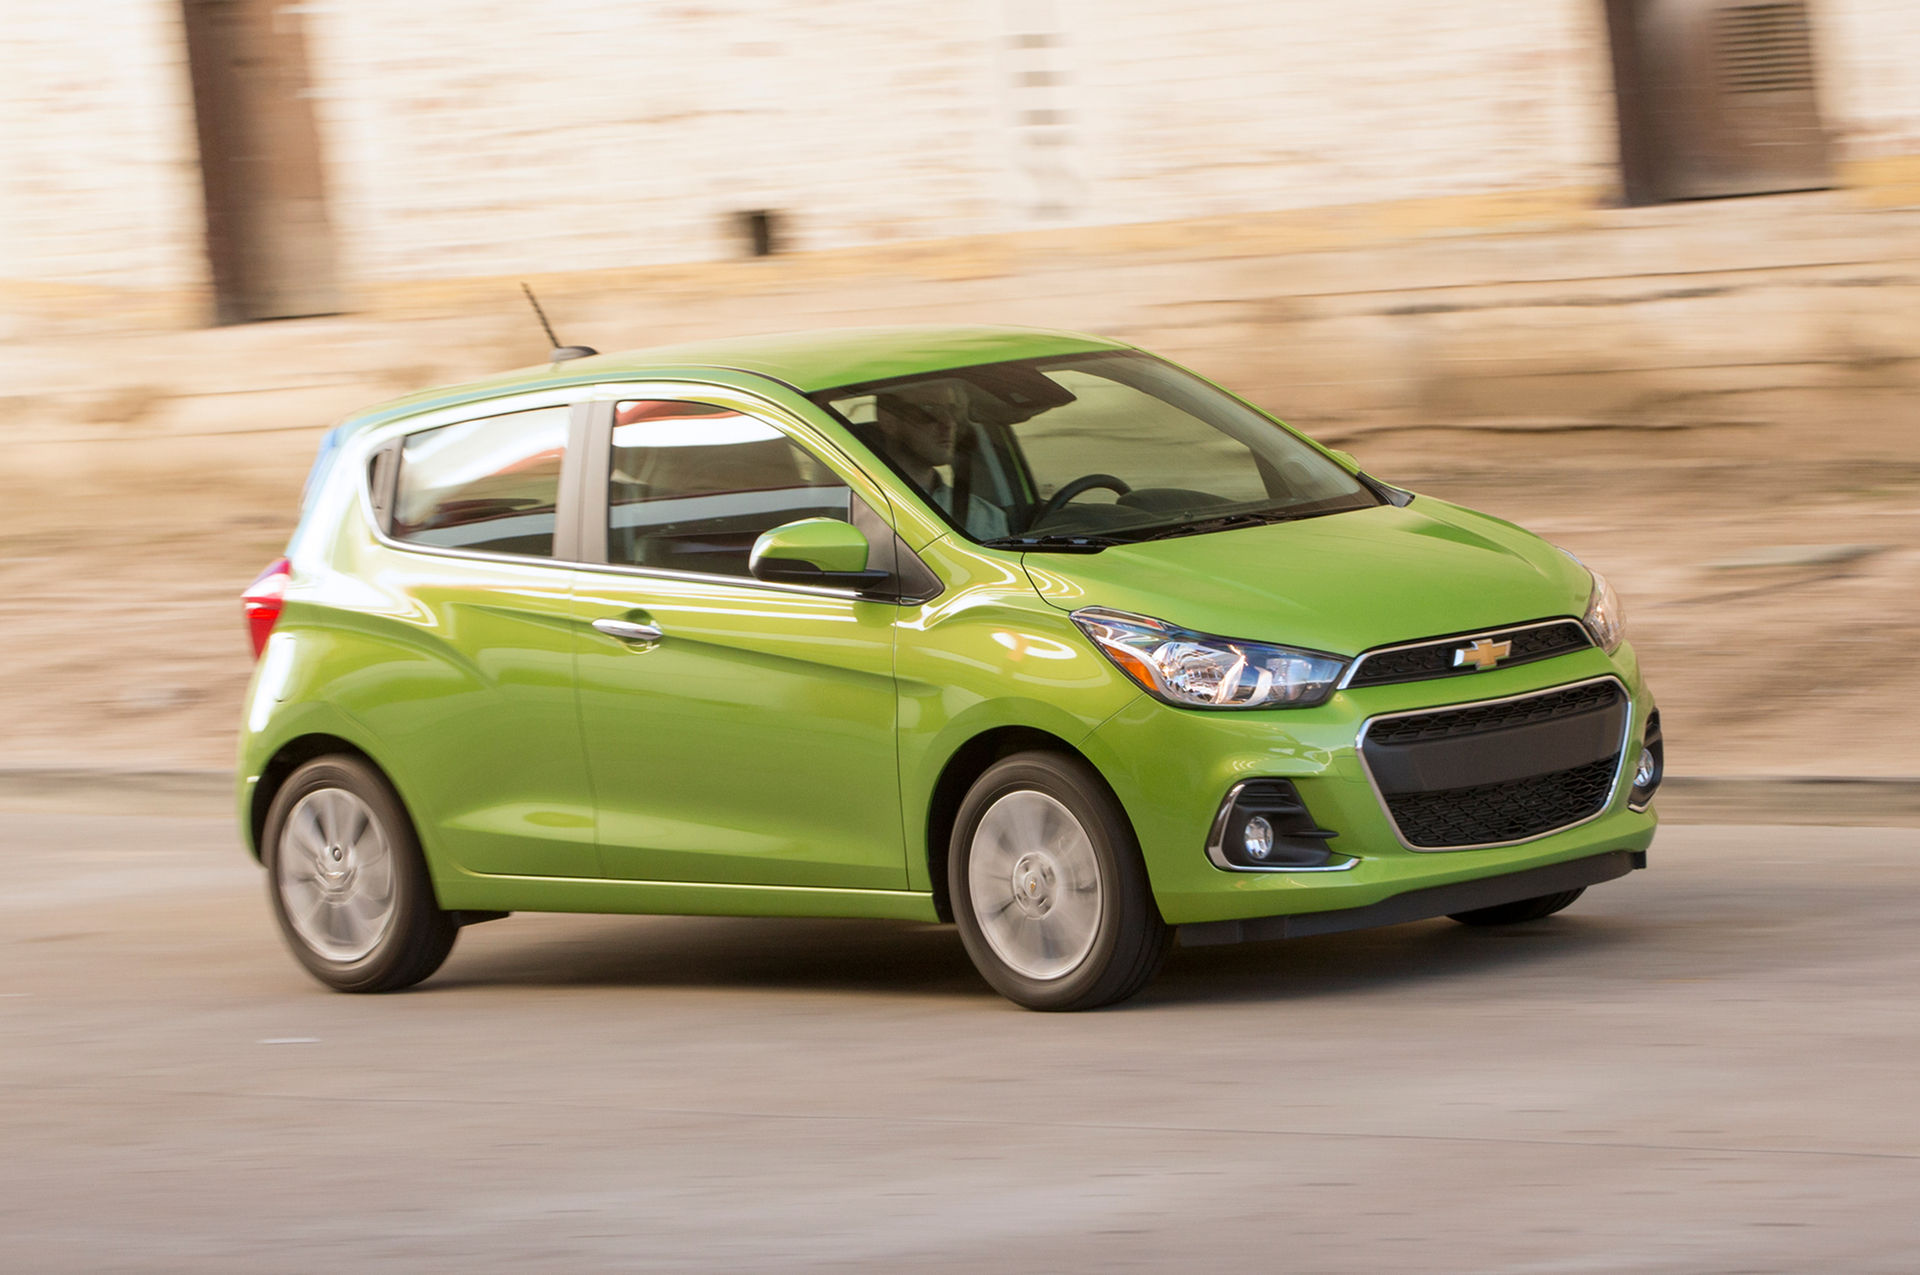 2016-Chevrolet-Spark-LT-front-three-quarter-in-motion